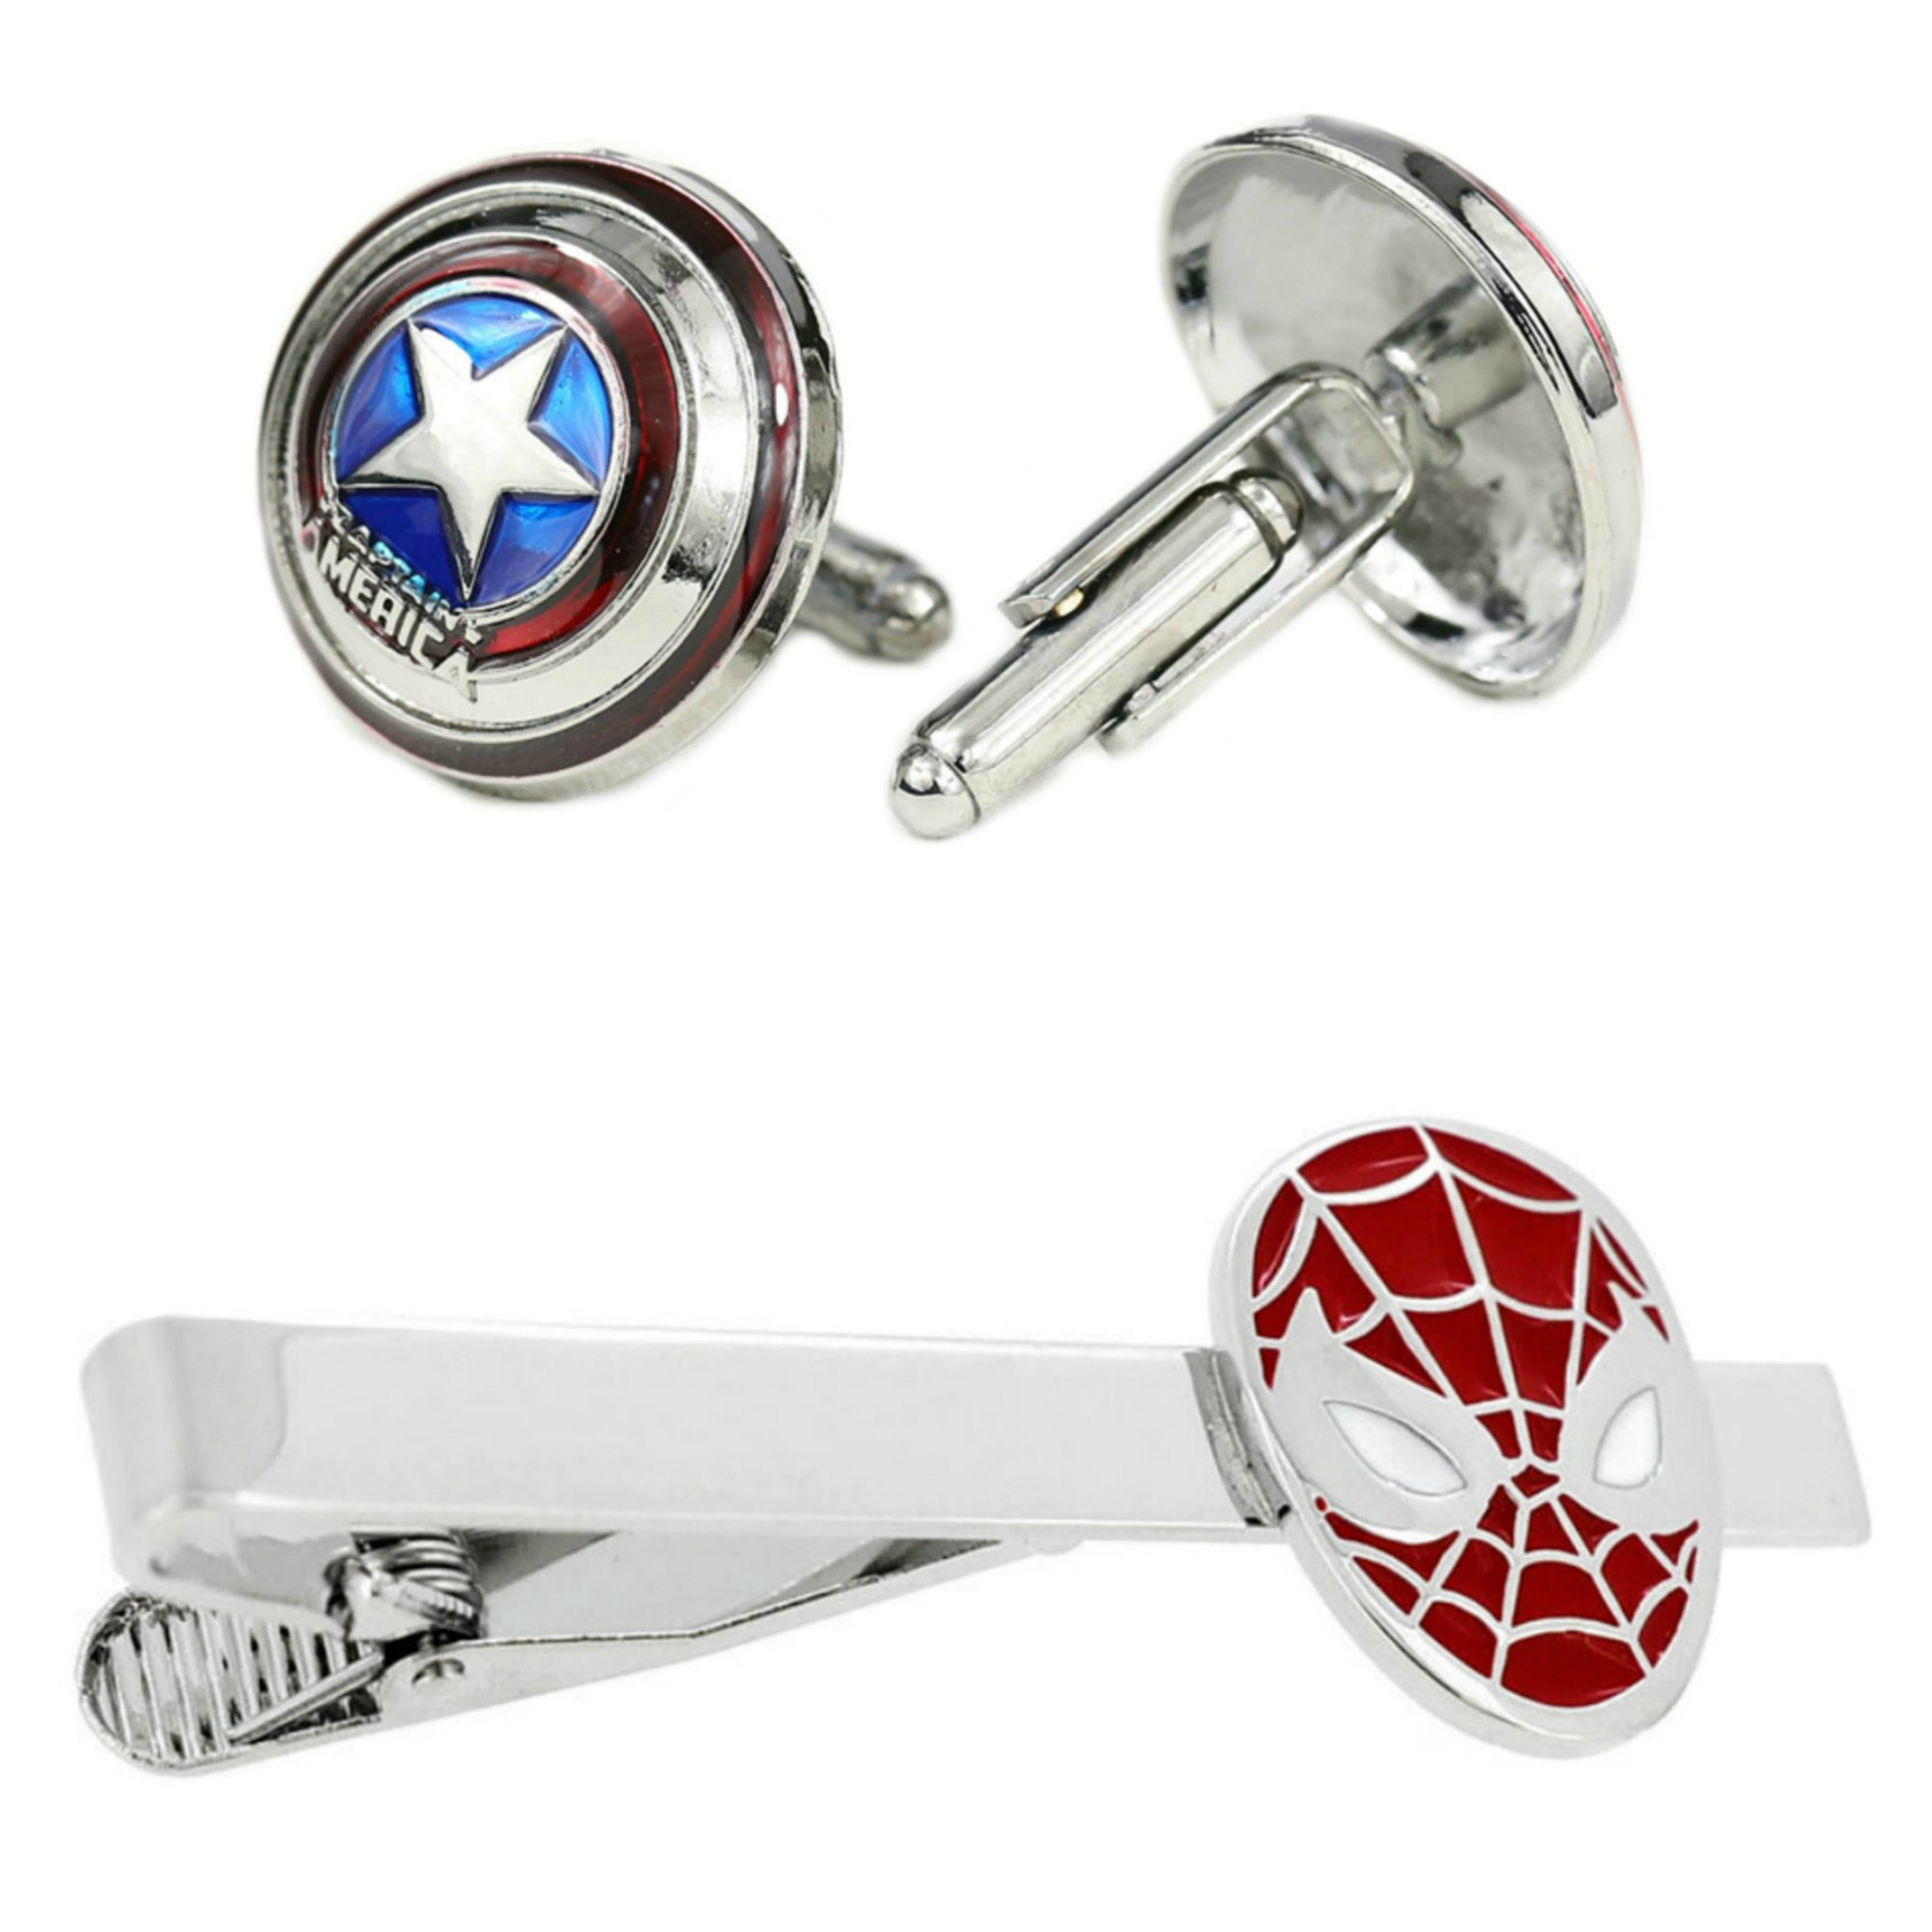 Outlander Captain America Cufflink & Spiderman Tiebar - New 2018 Marvel Studios Superhero Movies - Set of 2 Wedding Logo w/Gift Box by Outlander (Image #1)